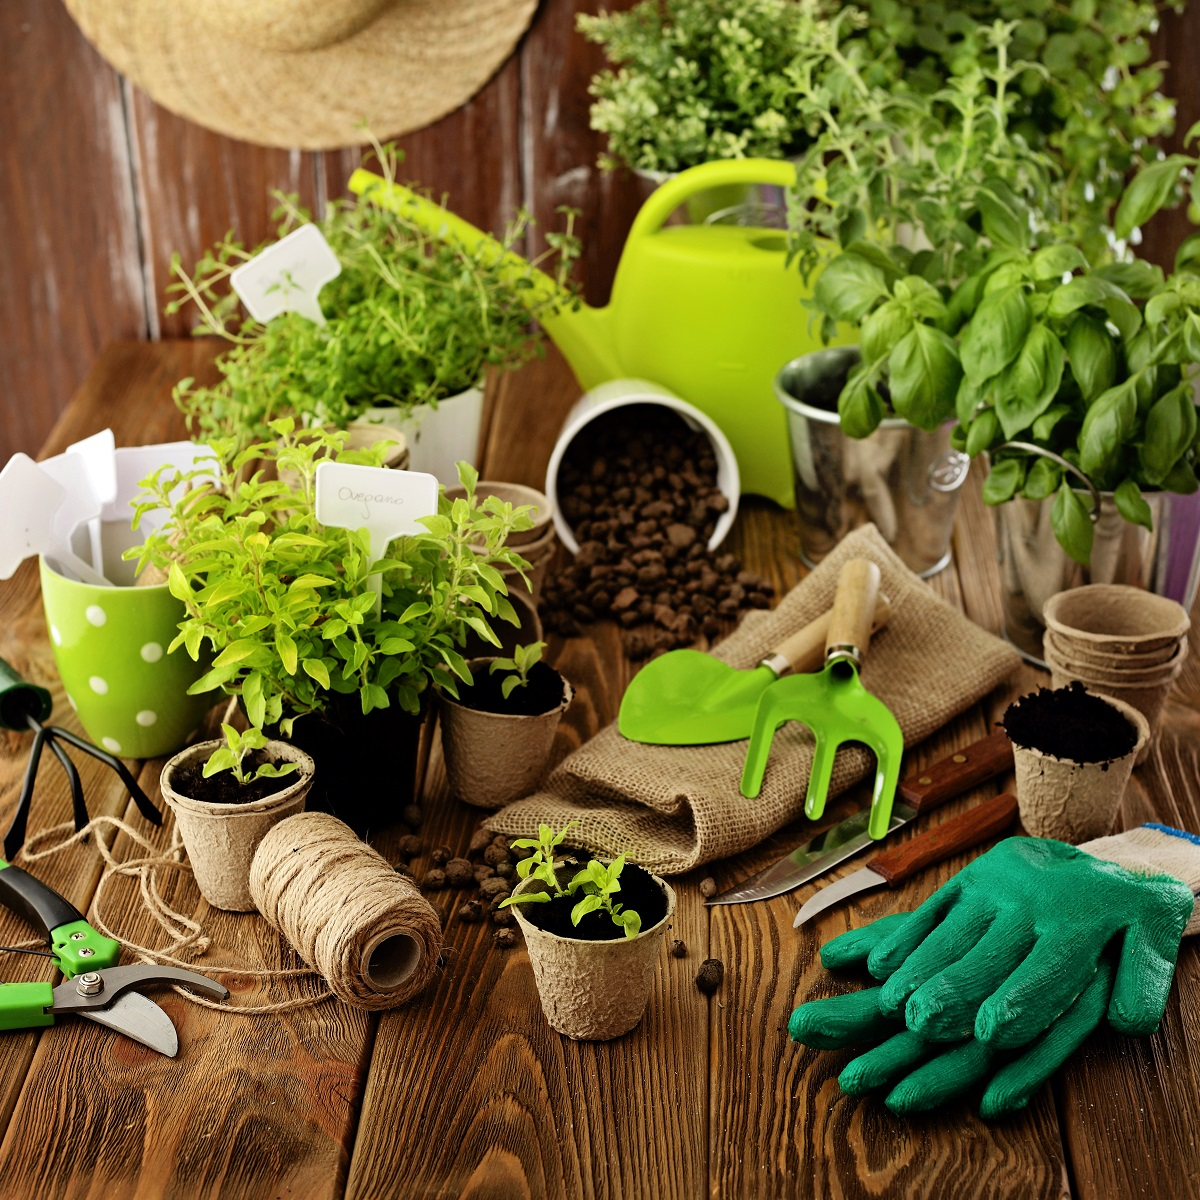 gardening materials and plants